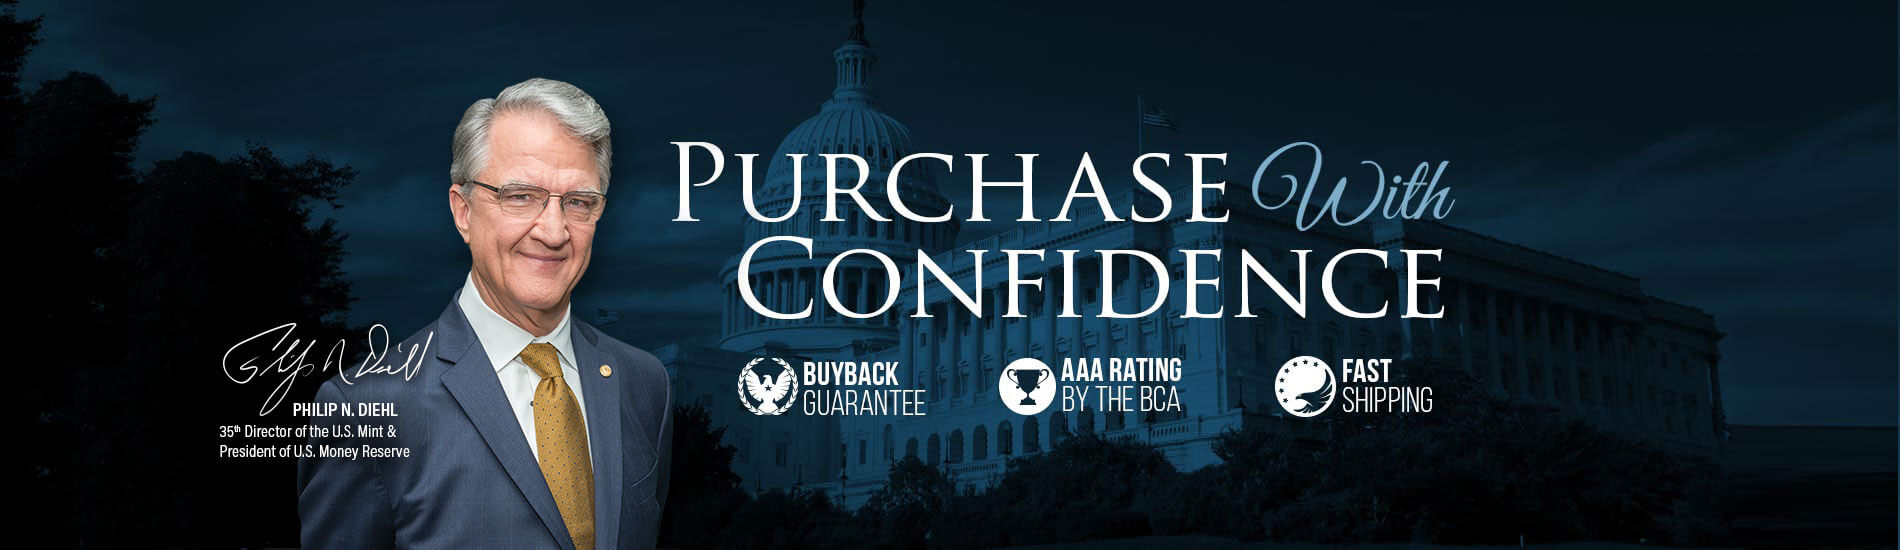 Purchase with confidence banner with image of USMR president